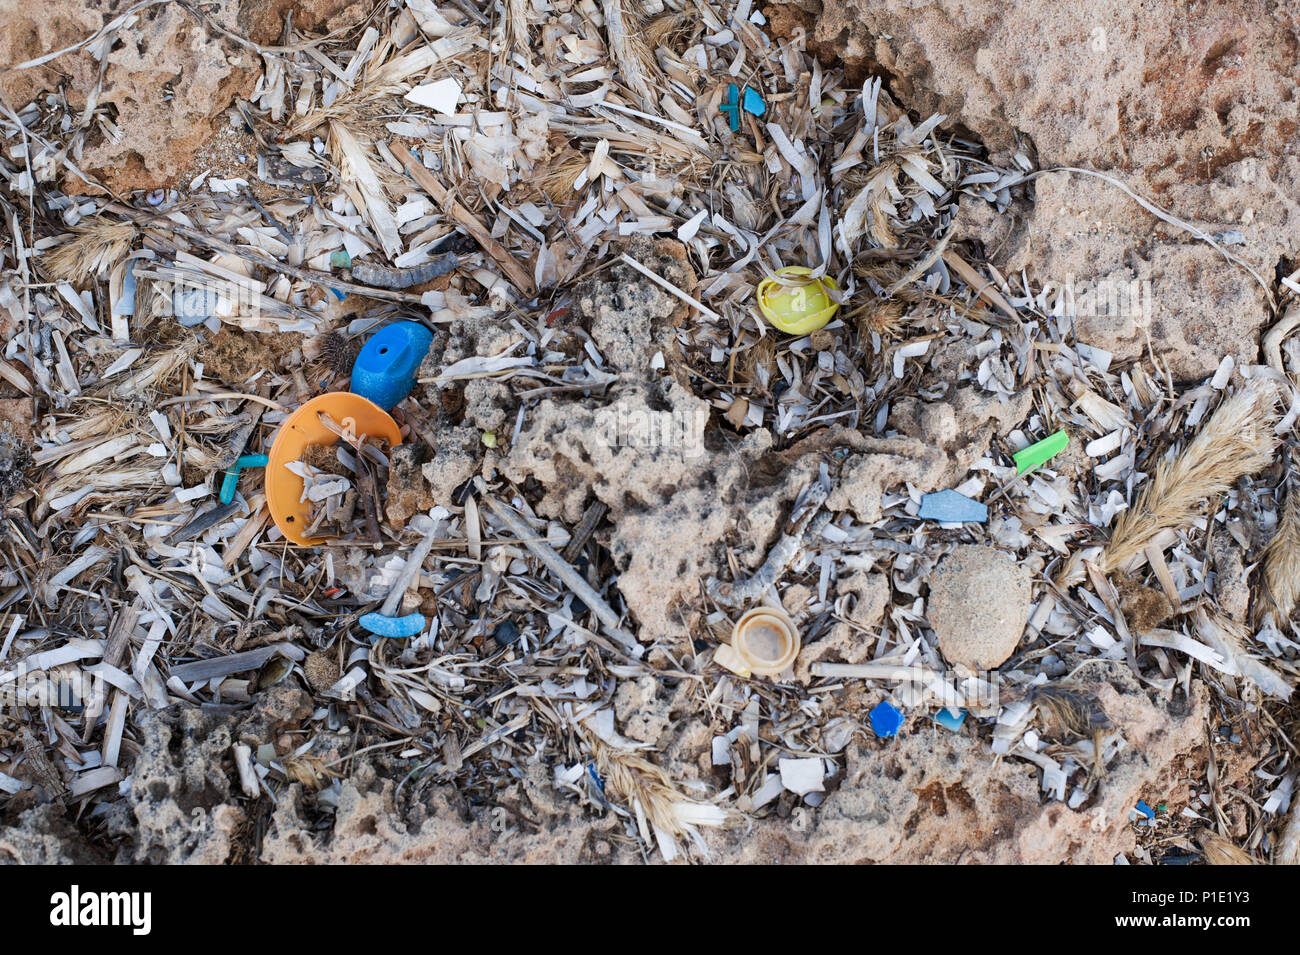 A Coast Polluted by the Plastic Garbage. - Stock Image